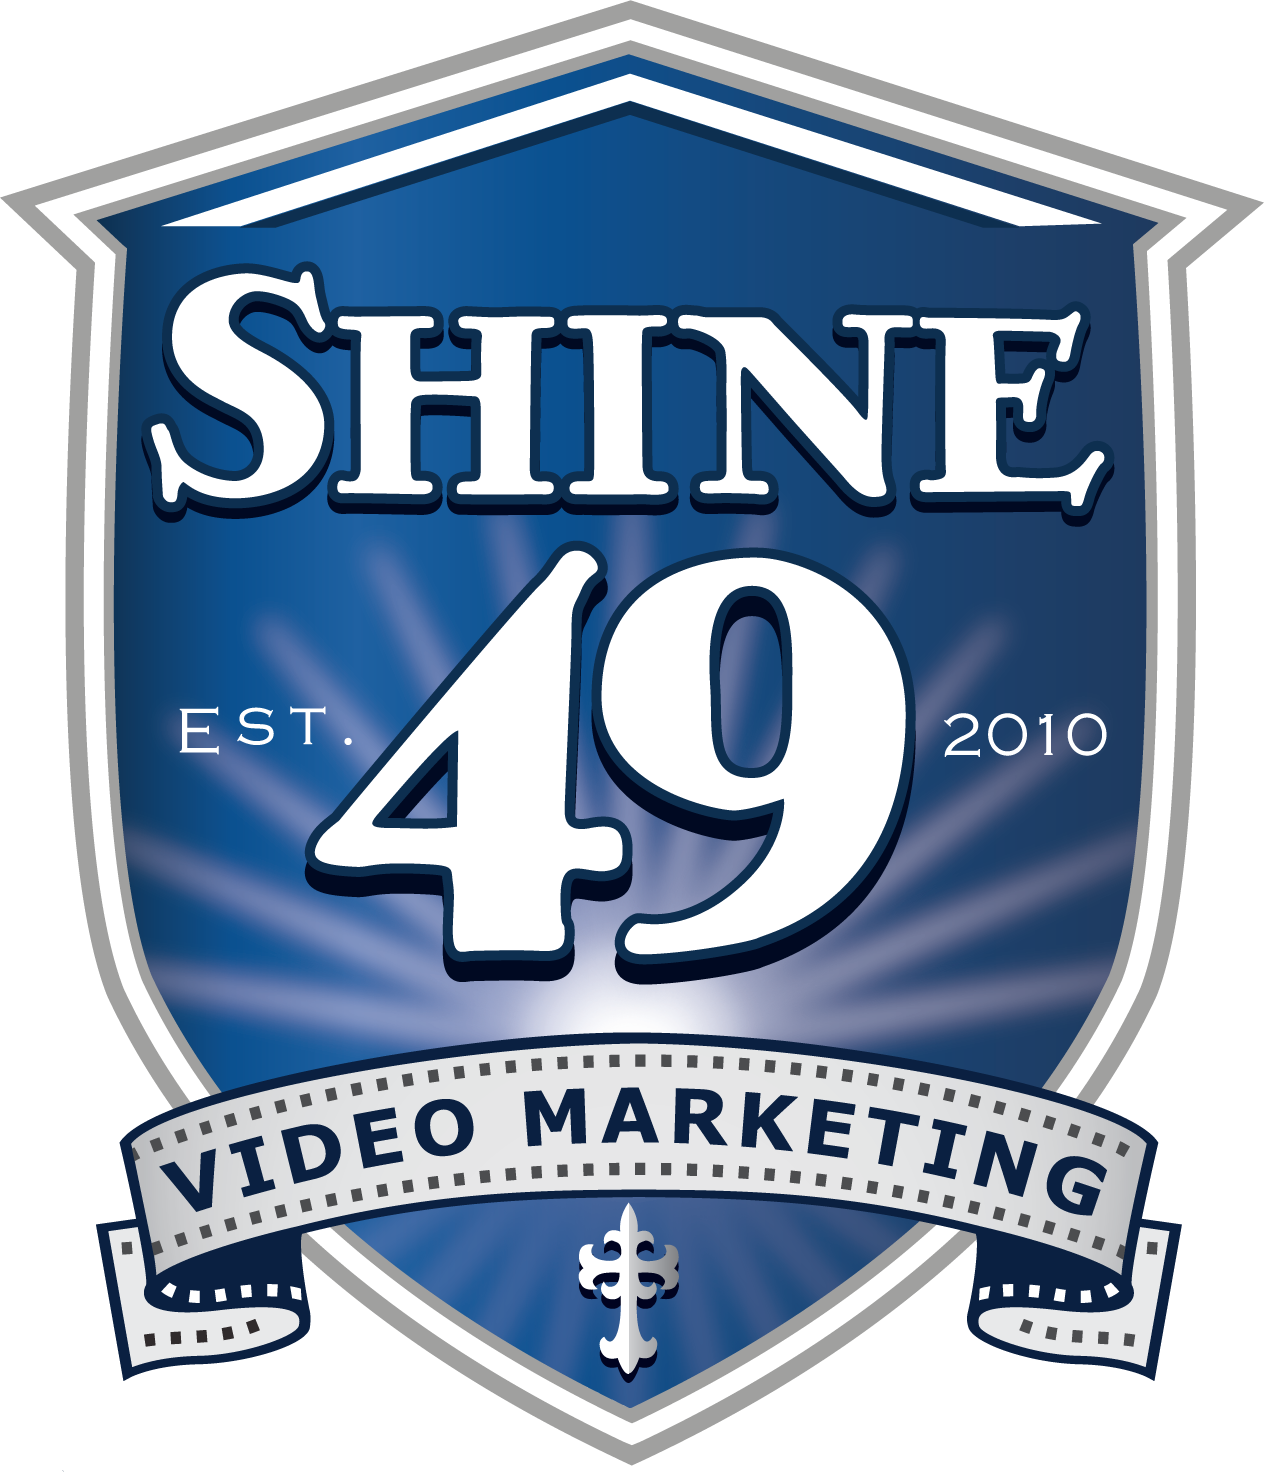 Shine 49 Video Marketing